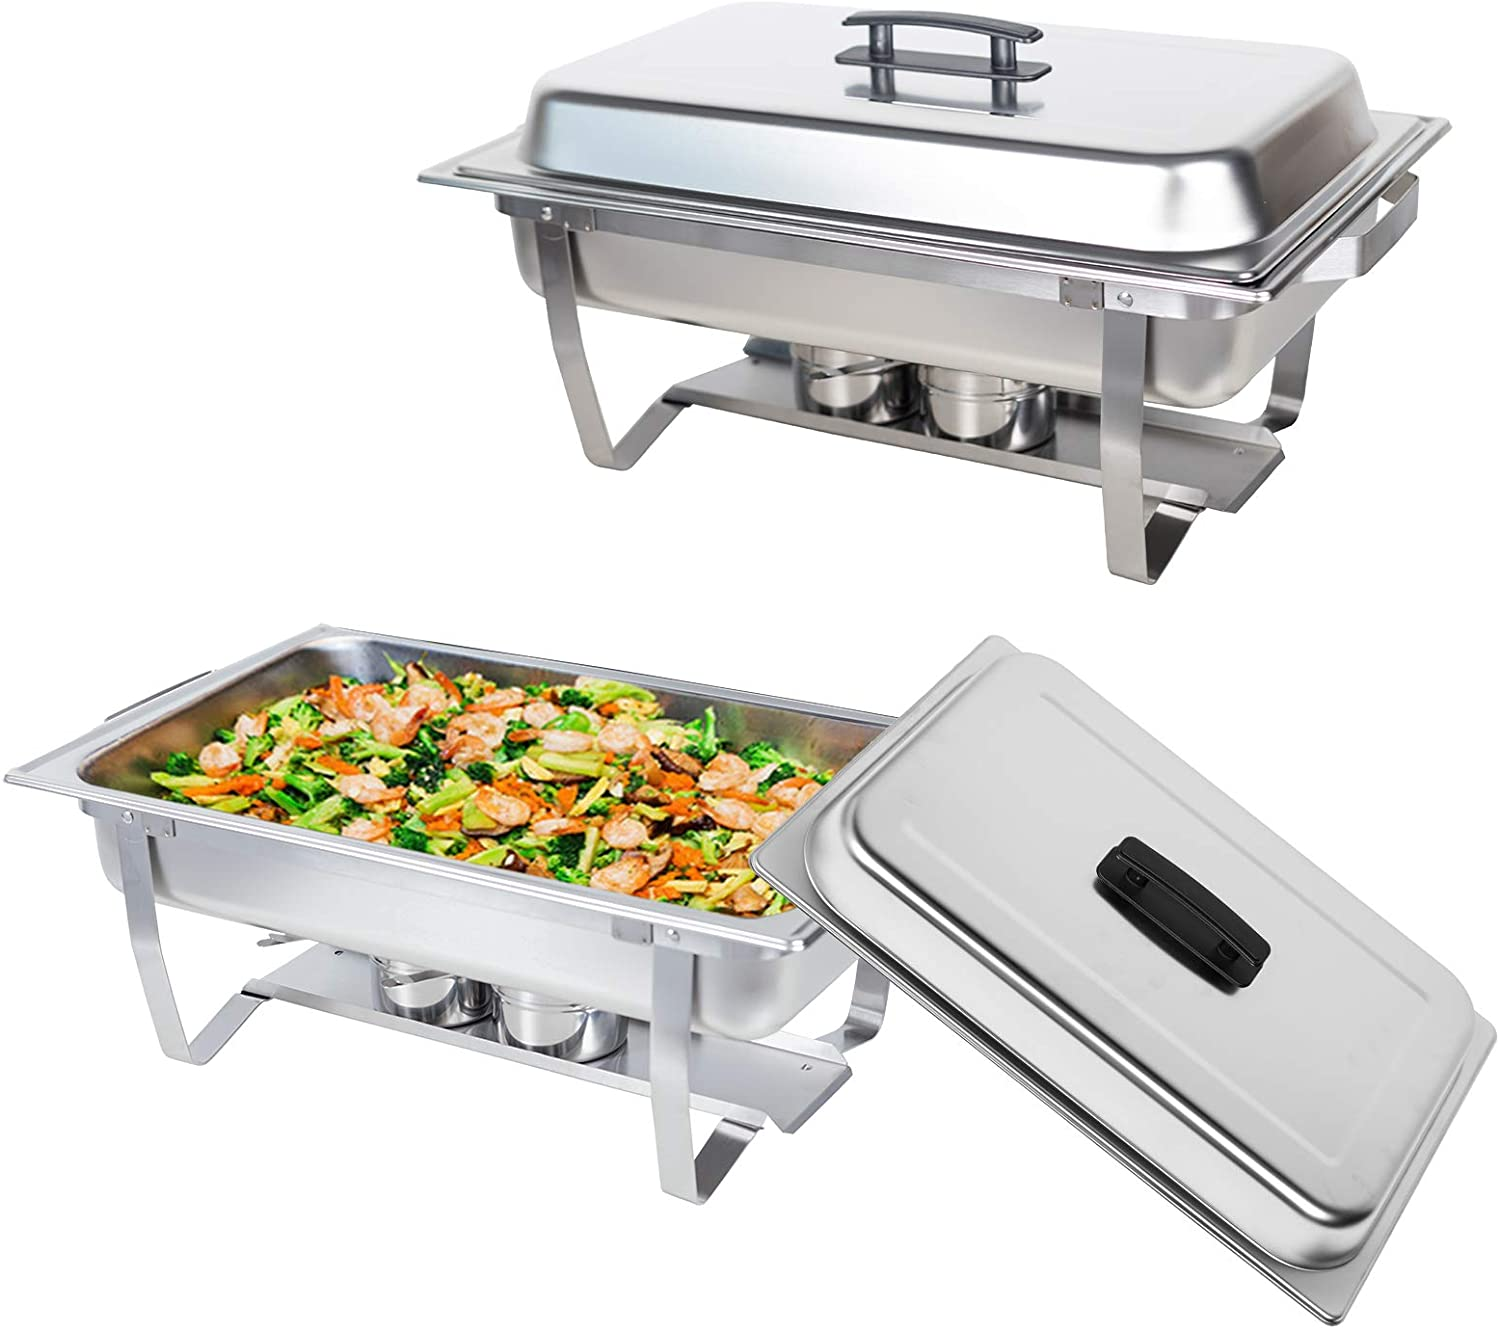 Valgus 2 Pack 8QT Stainless Steel Chafing Dish Buffet Chafer Set with Foldable Frame Water Trays Food Pan Fuel Holder and Lid Food Warmers for Wedding, Parties, Banquet, Catering Events